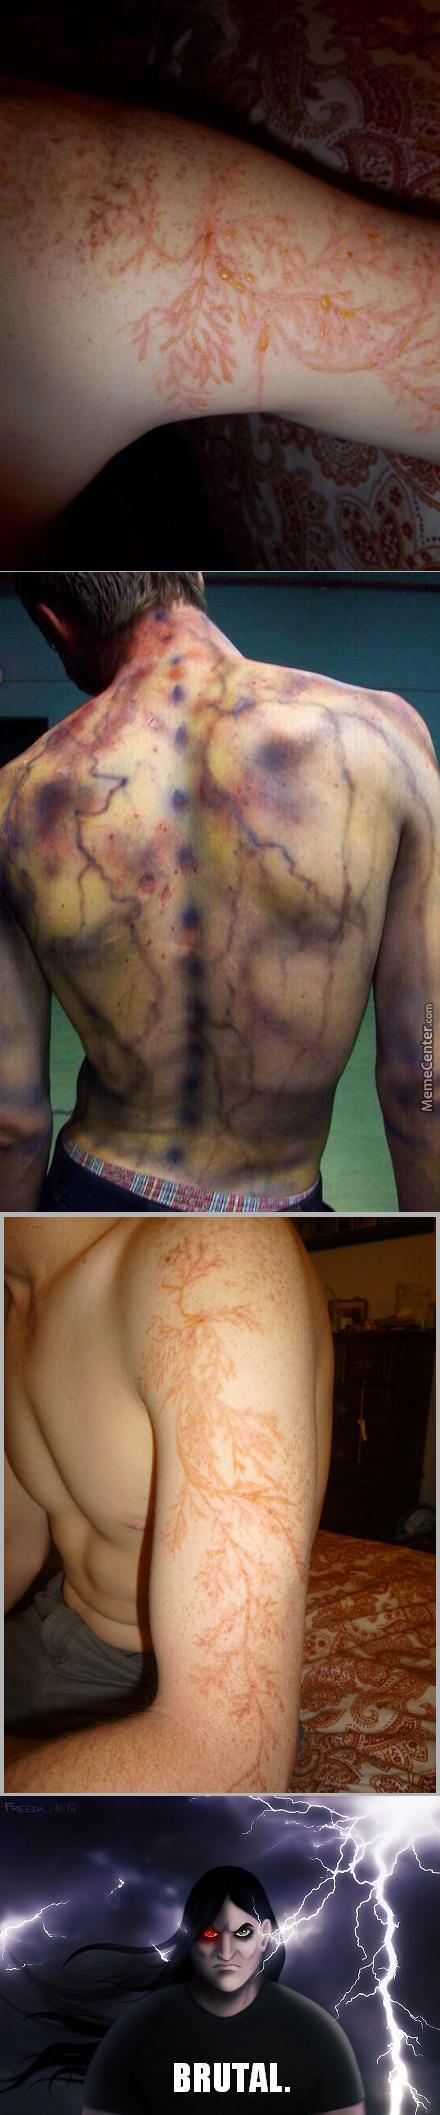 Gruesomely Beautiful Lightning Strike Scarring